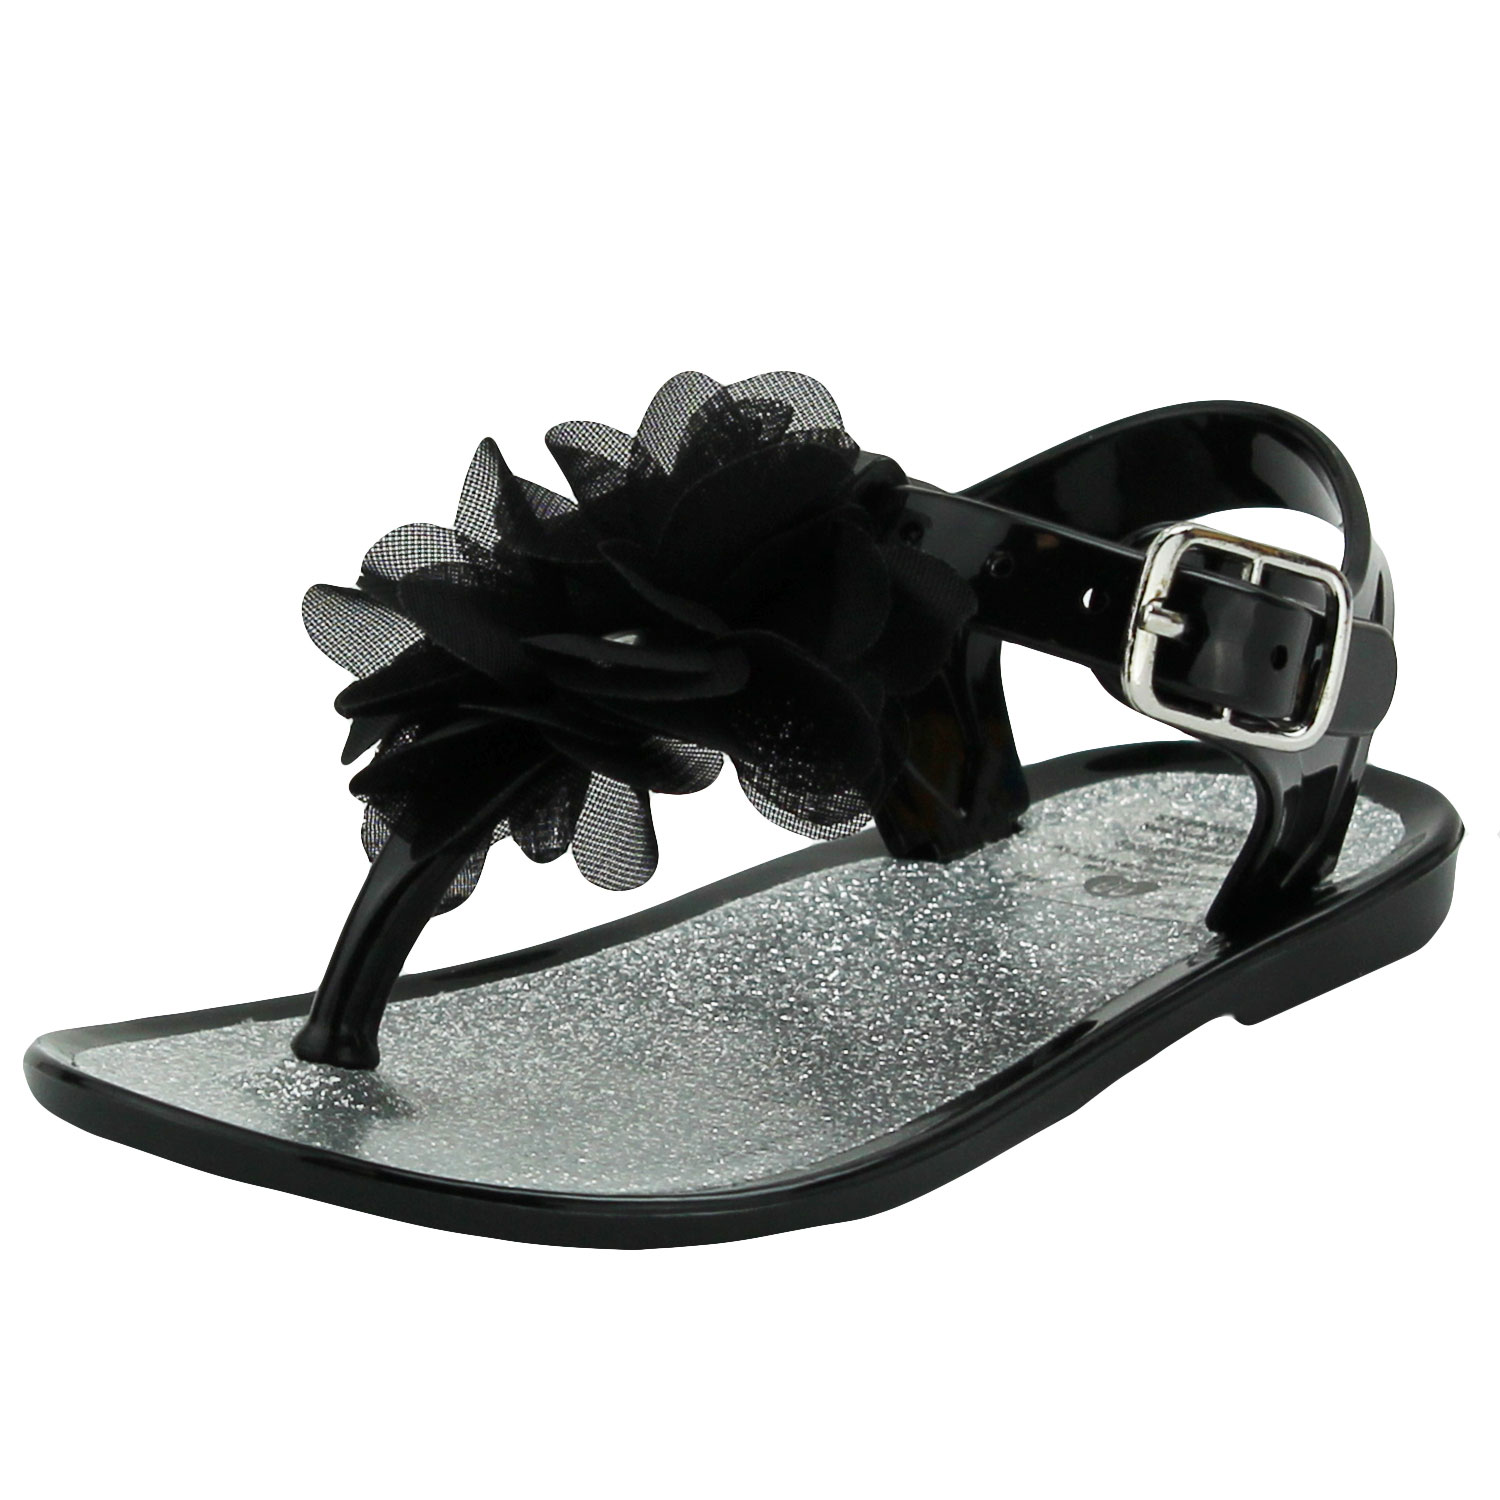 Stepping Stones Baby Girls Black Glitter Flower Thong Sandal / Jelly Sandals with Backs-Size 3 Infant Toddler Flip Flops For Causal or Dress